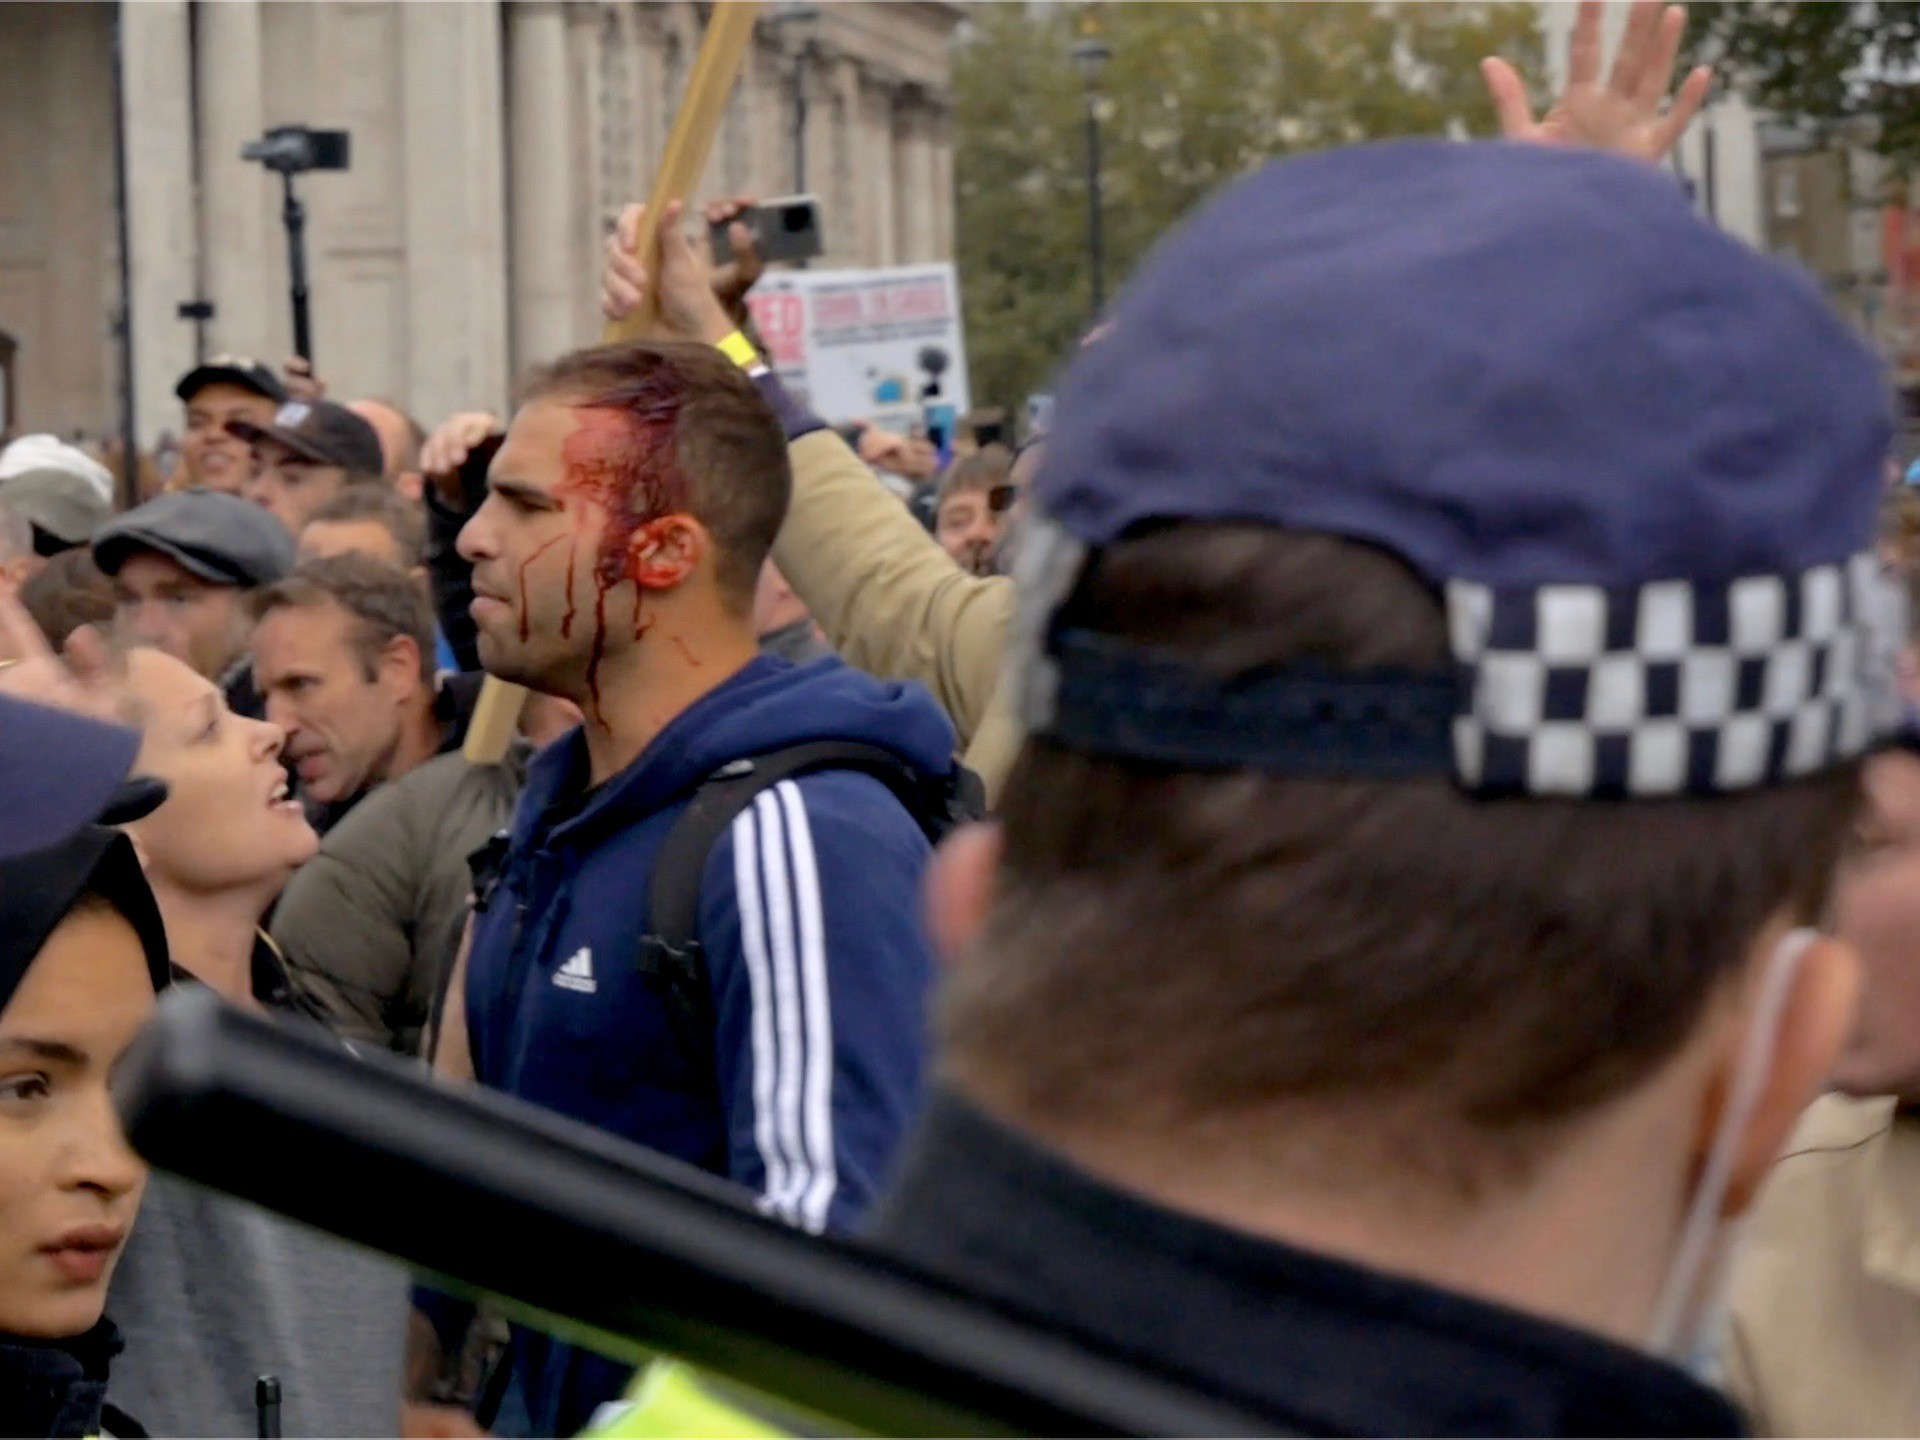 Ten arrested and four officers injured as London anti-lockdown rally cleared